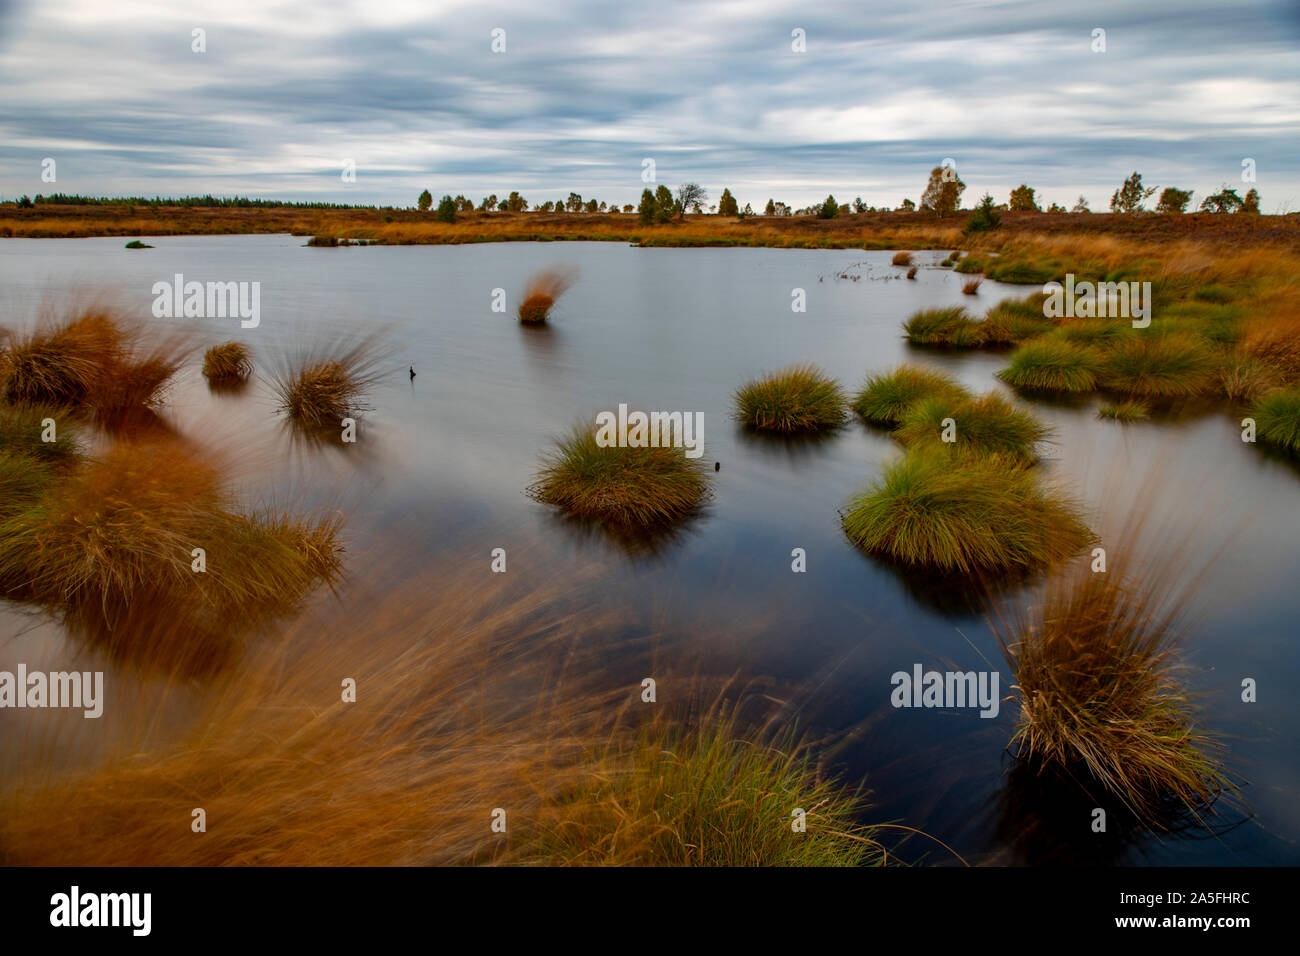 Belgium, Wallonia, the High Fens, high moor, in the region Eifel and Ardennes, nature park High Fens Eifel, in the Brackvenn, near Mützenich, pond, Stock Photo